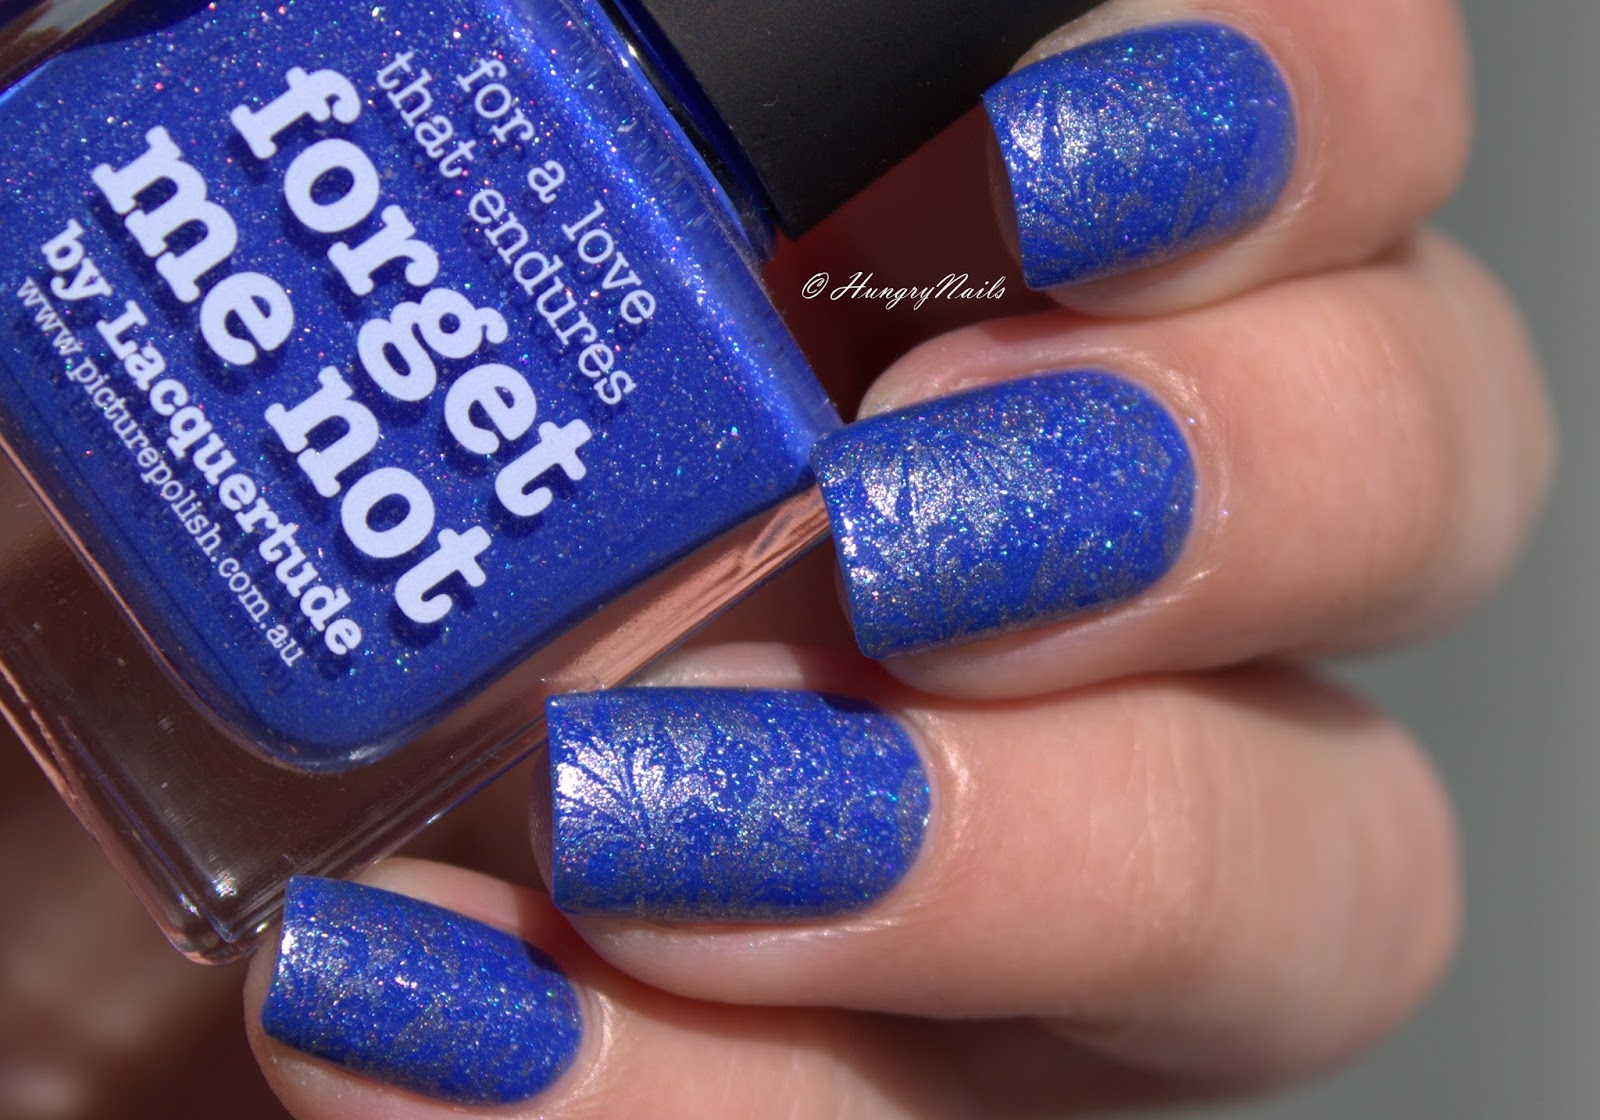 http://hungrynails.blogspot.de/2016/03/picture-polish-forget-me-not.html